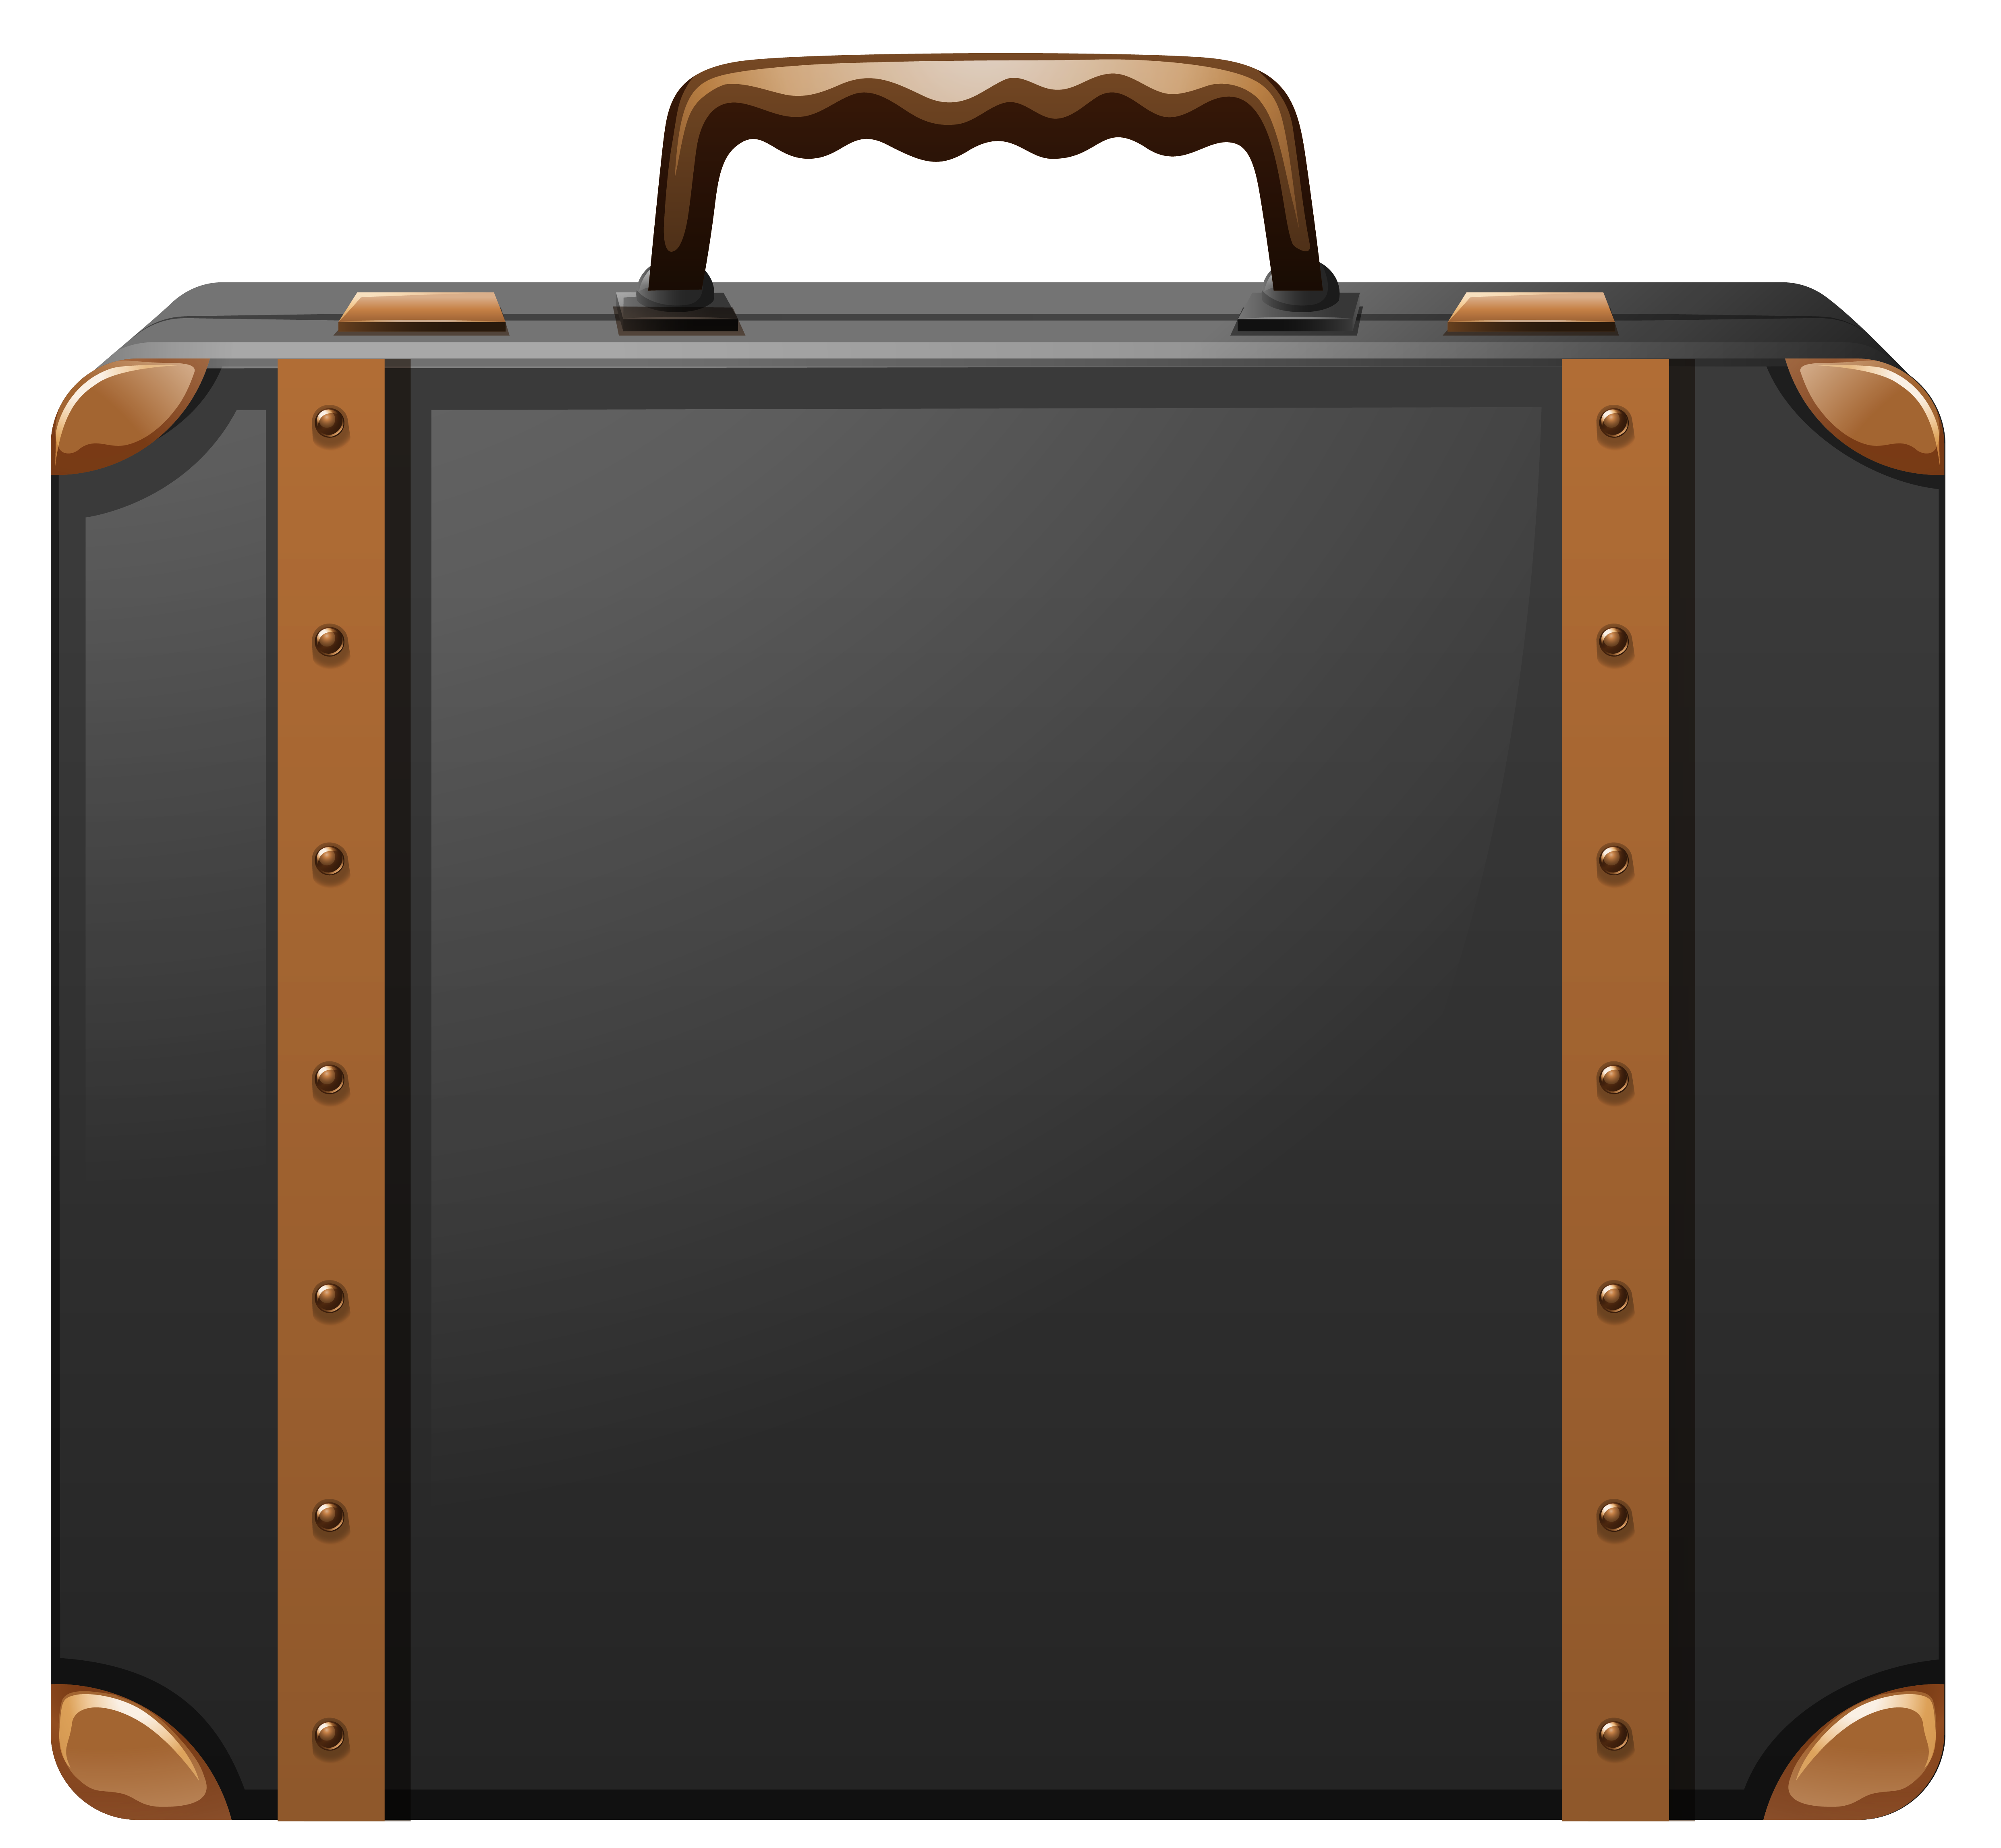 Suitcase PNG - 2547